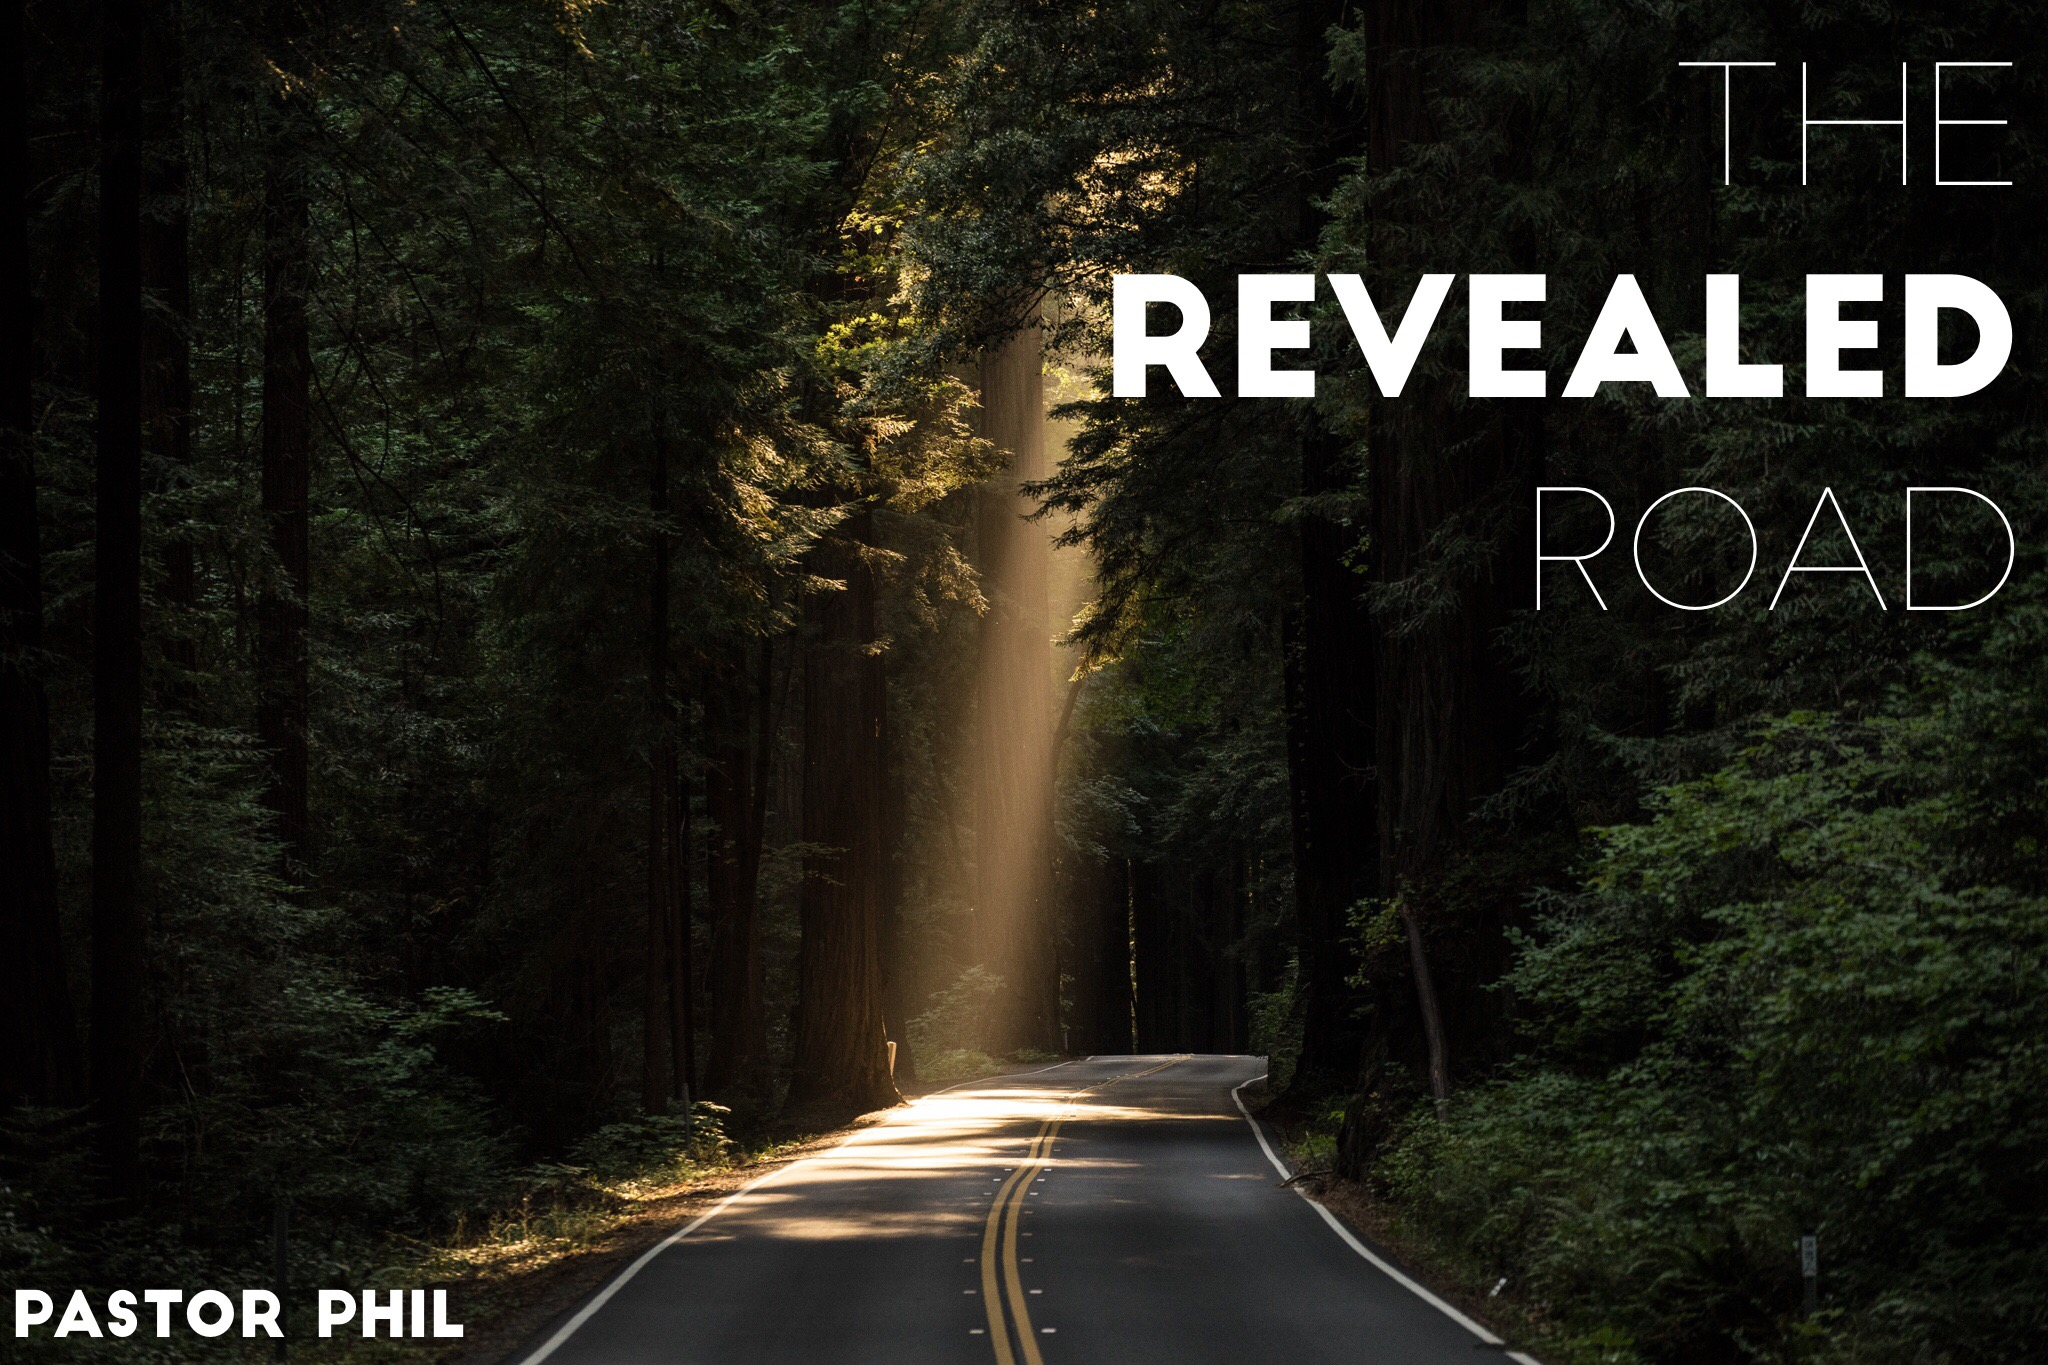 The Revealed Road Pt 2